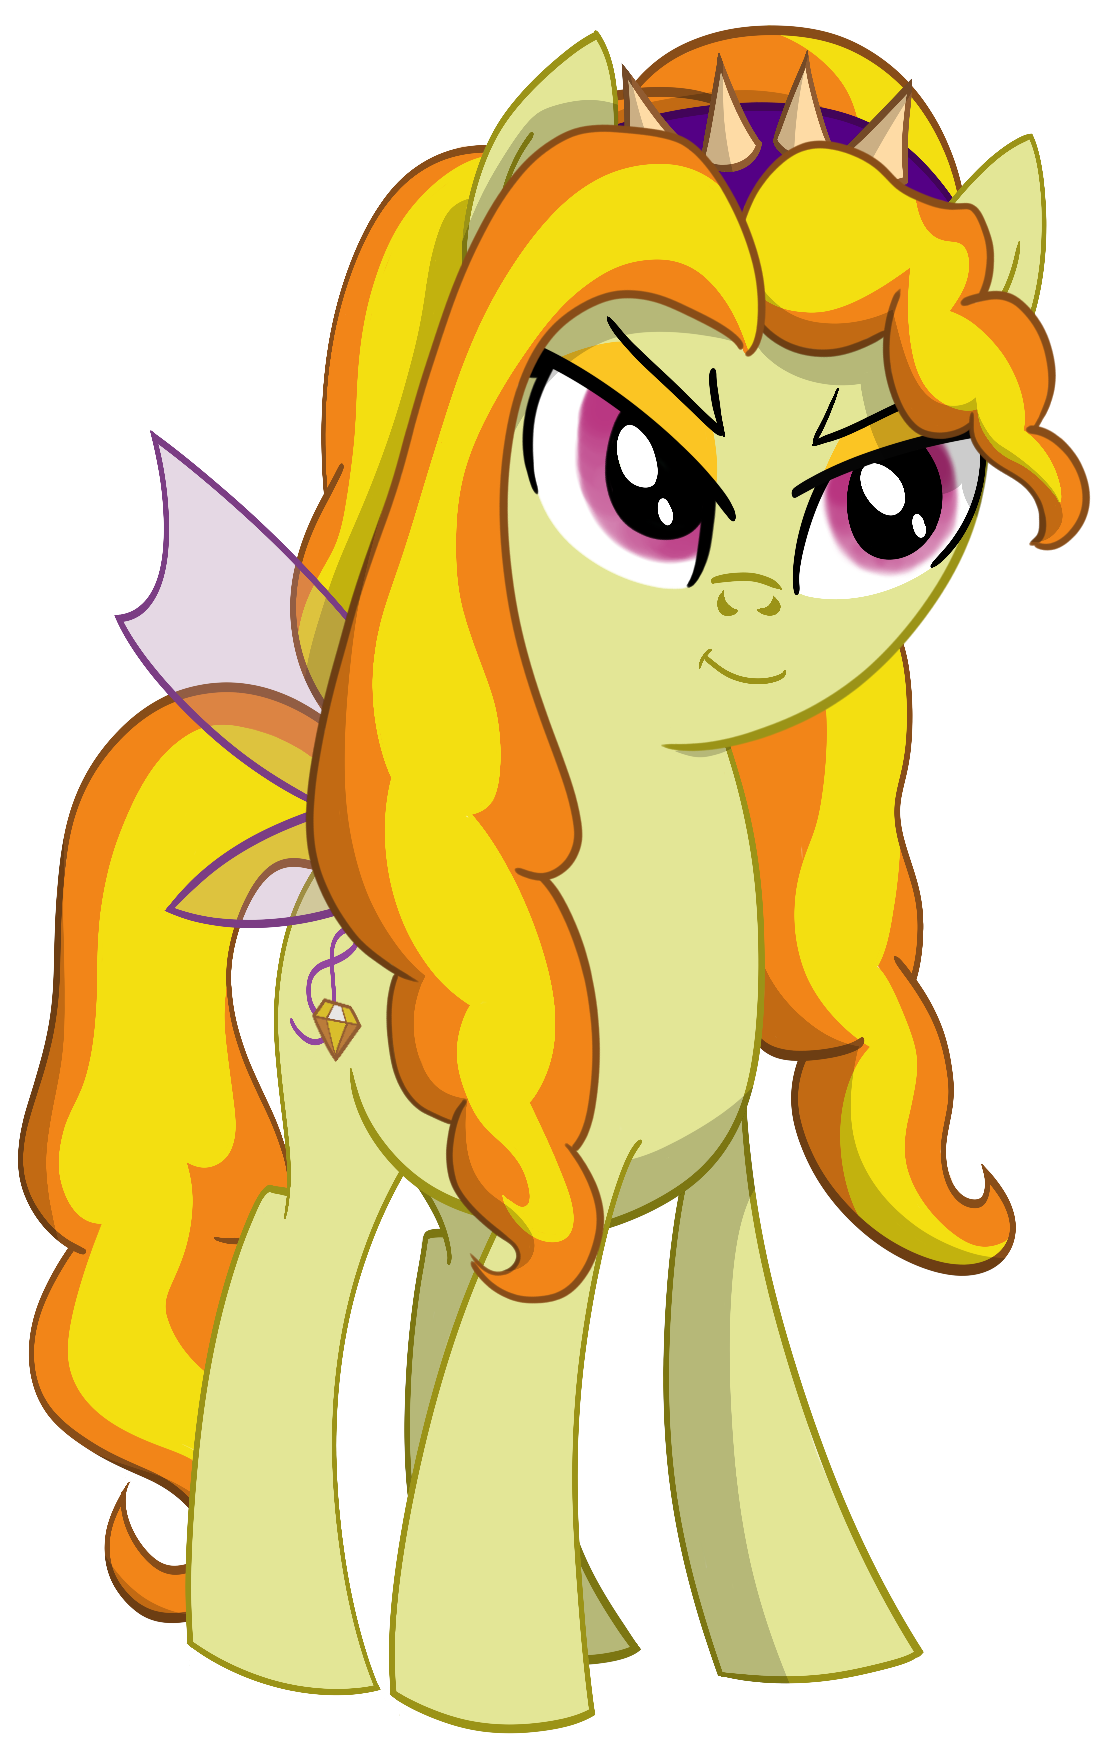 Uncategorized My Little Pony Adagio Dazzle my little pony adagio dazzle by givralix on deviantart givralix